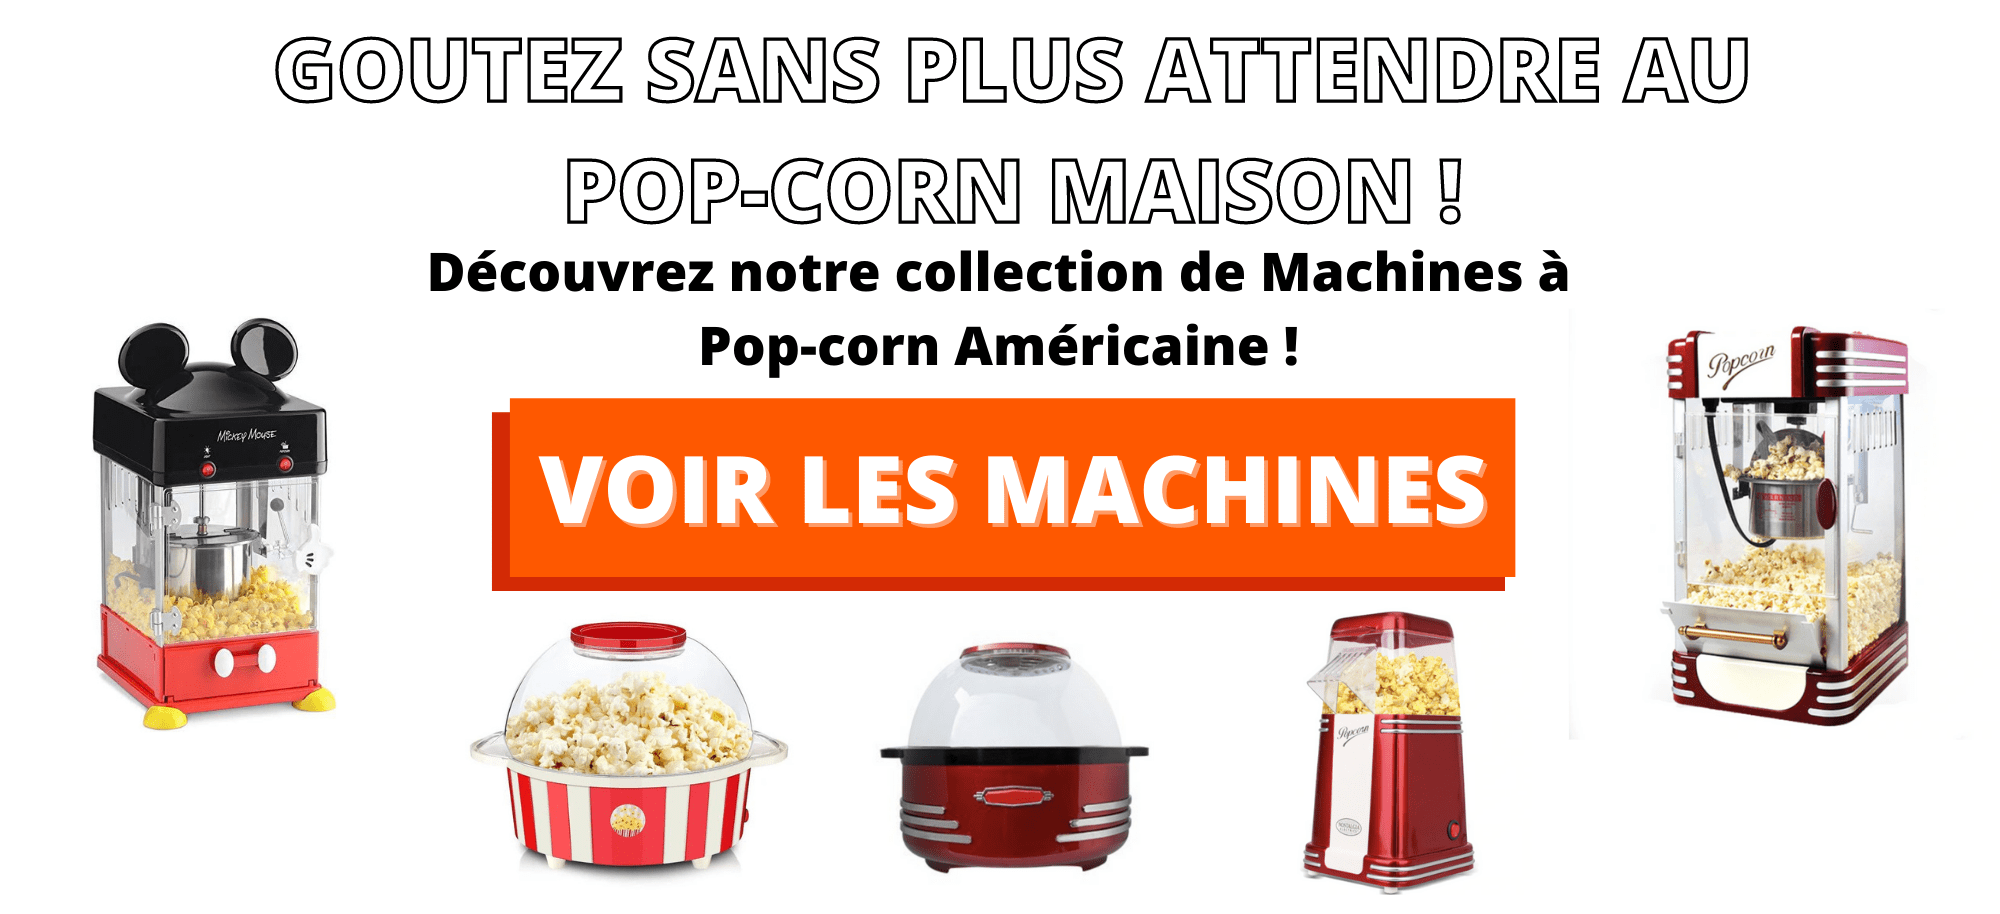 machine à pop-corn américaine